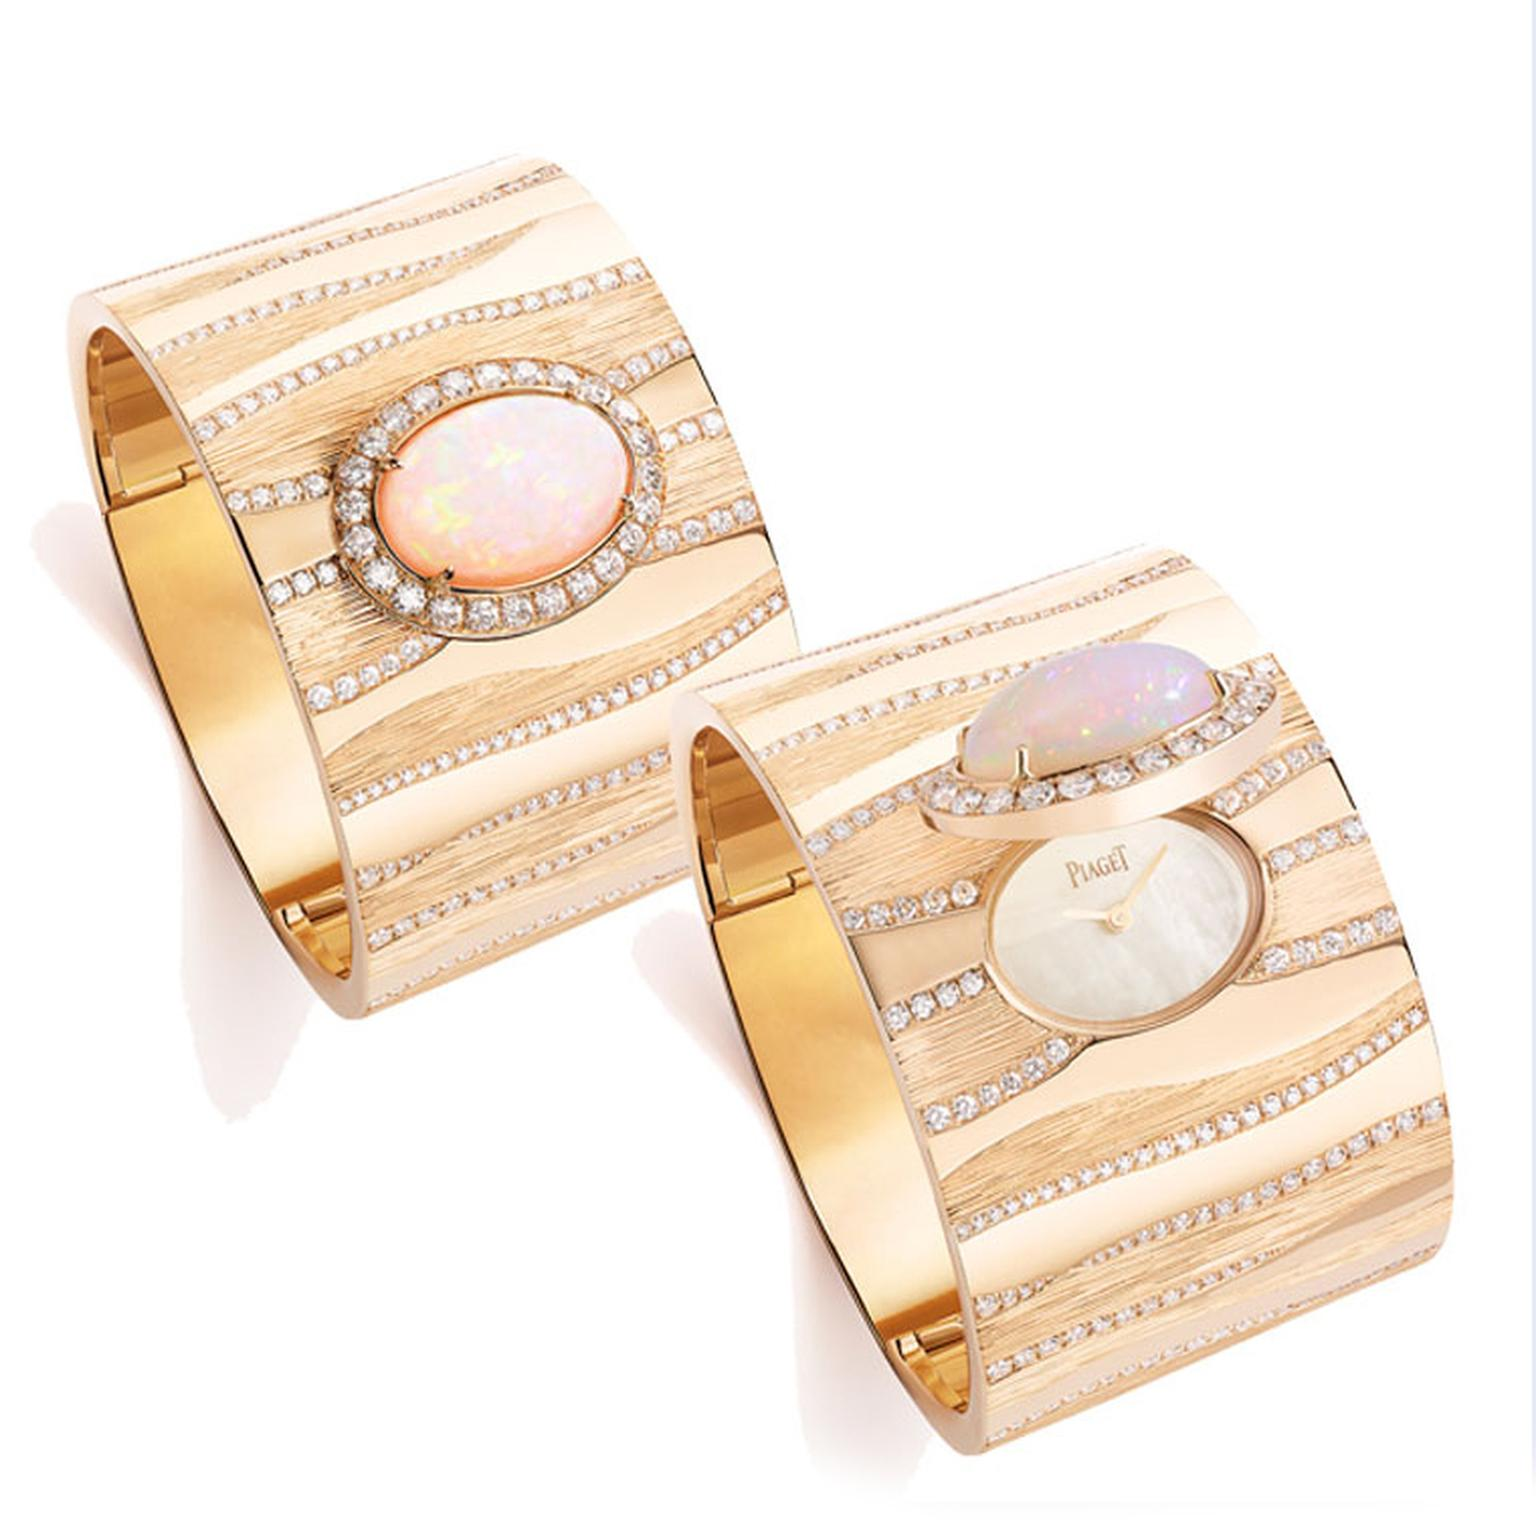 Piaget Sand Waves rose gold secret watch and cuff